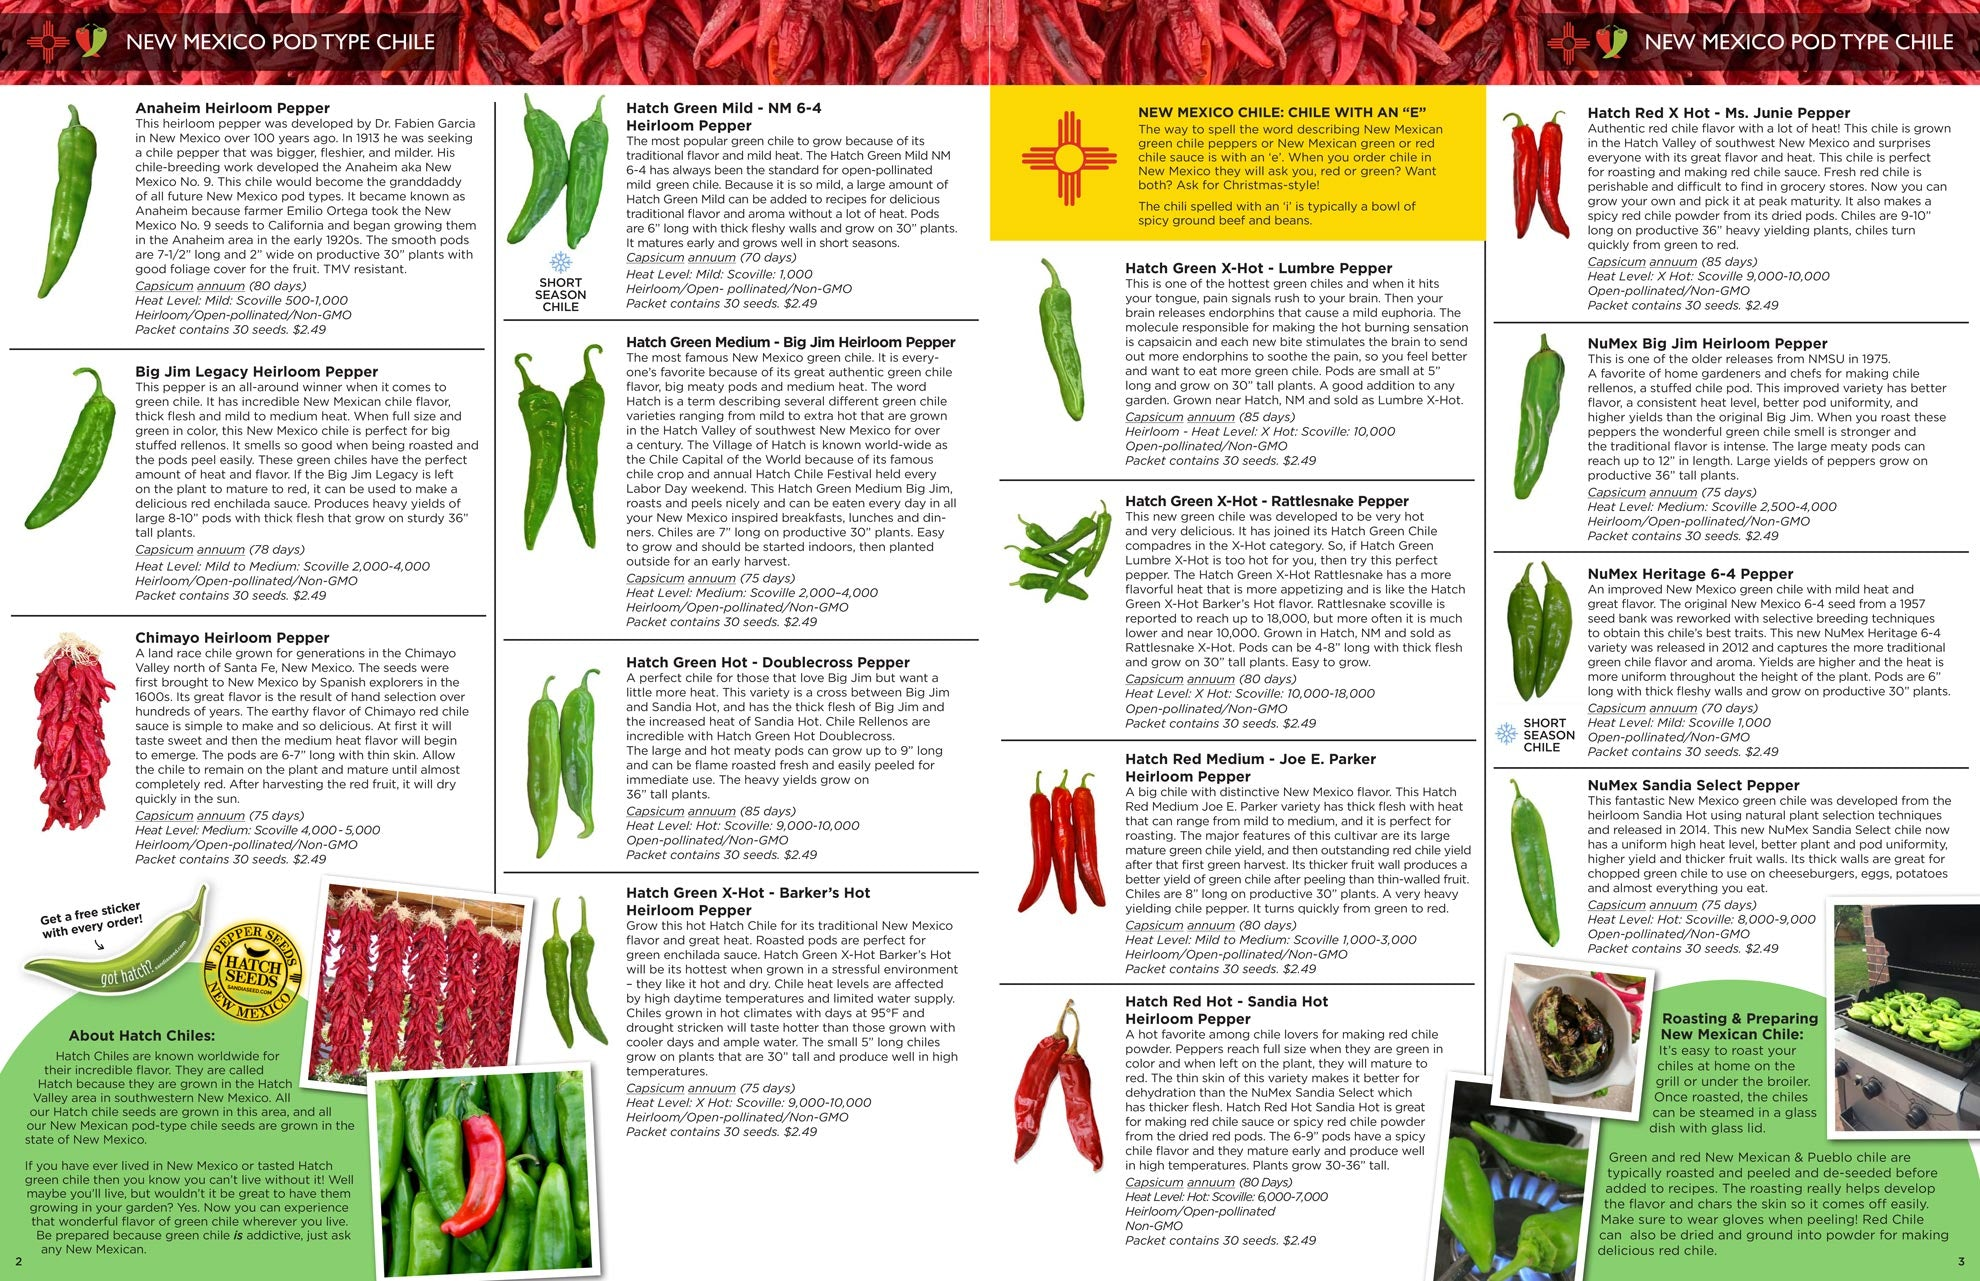 2021 Seed Catalog from Sandia Seed - Hatch Chile Seeds from New Mexico